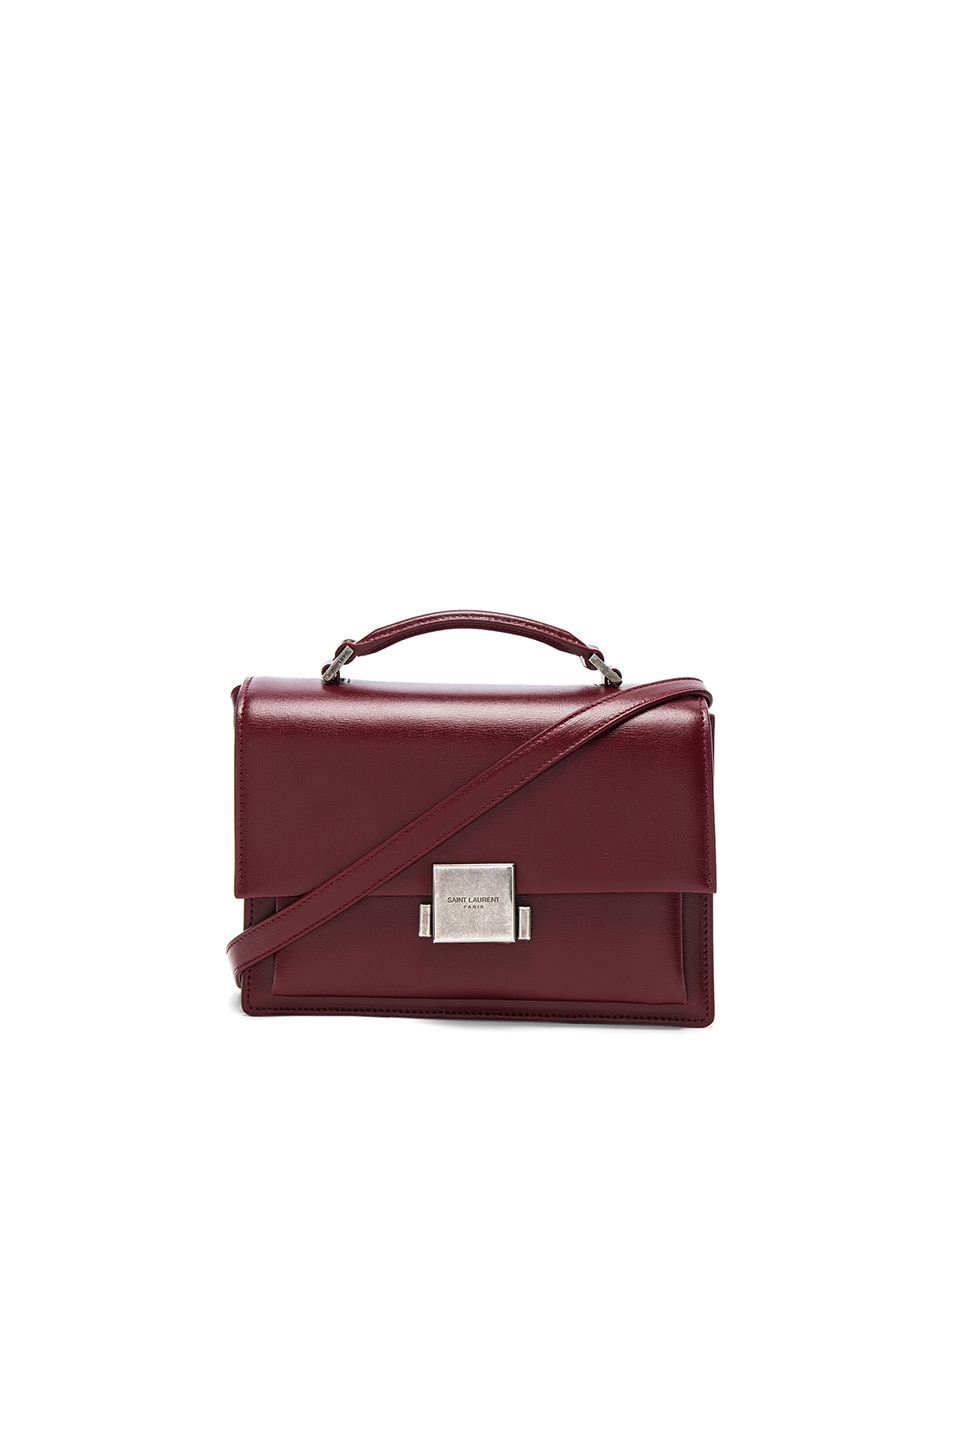 Image 1 of Saint Laurent Medium Bellechasse Schoolbag in Palissandre